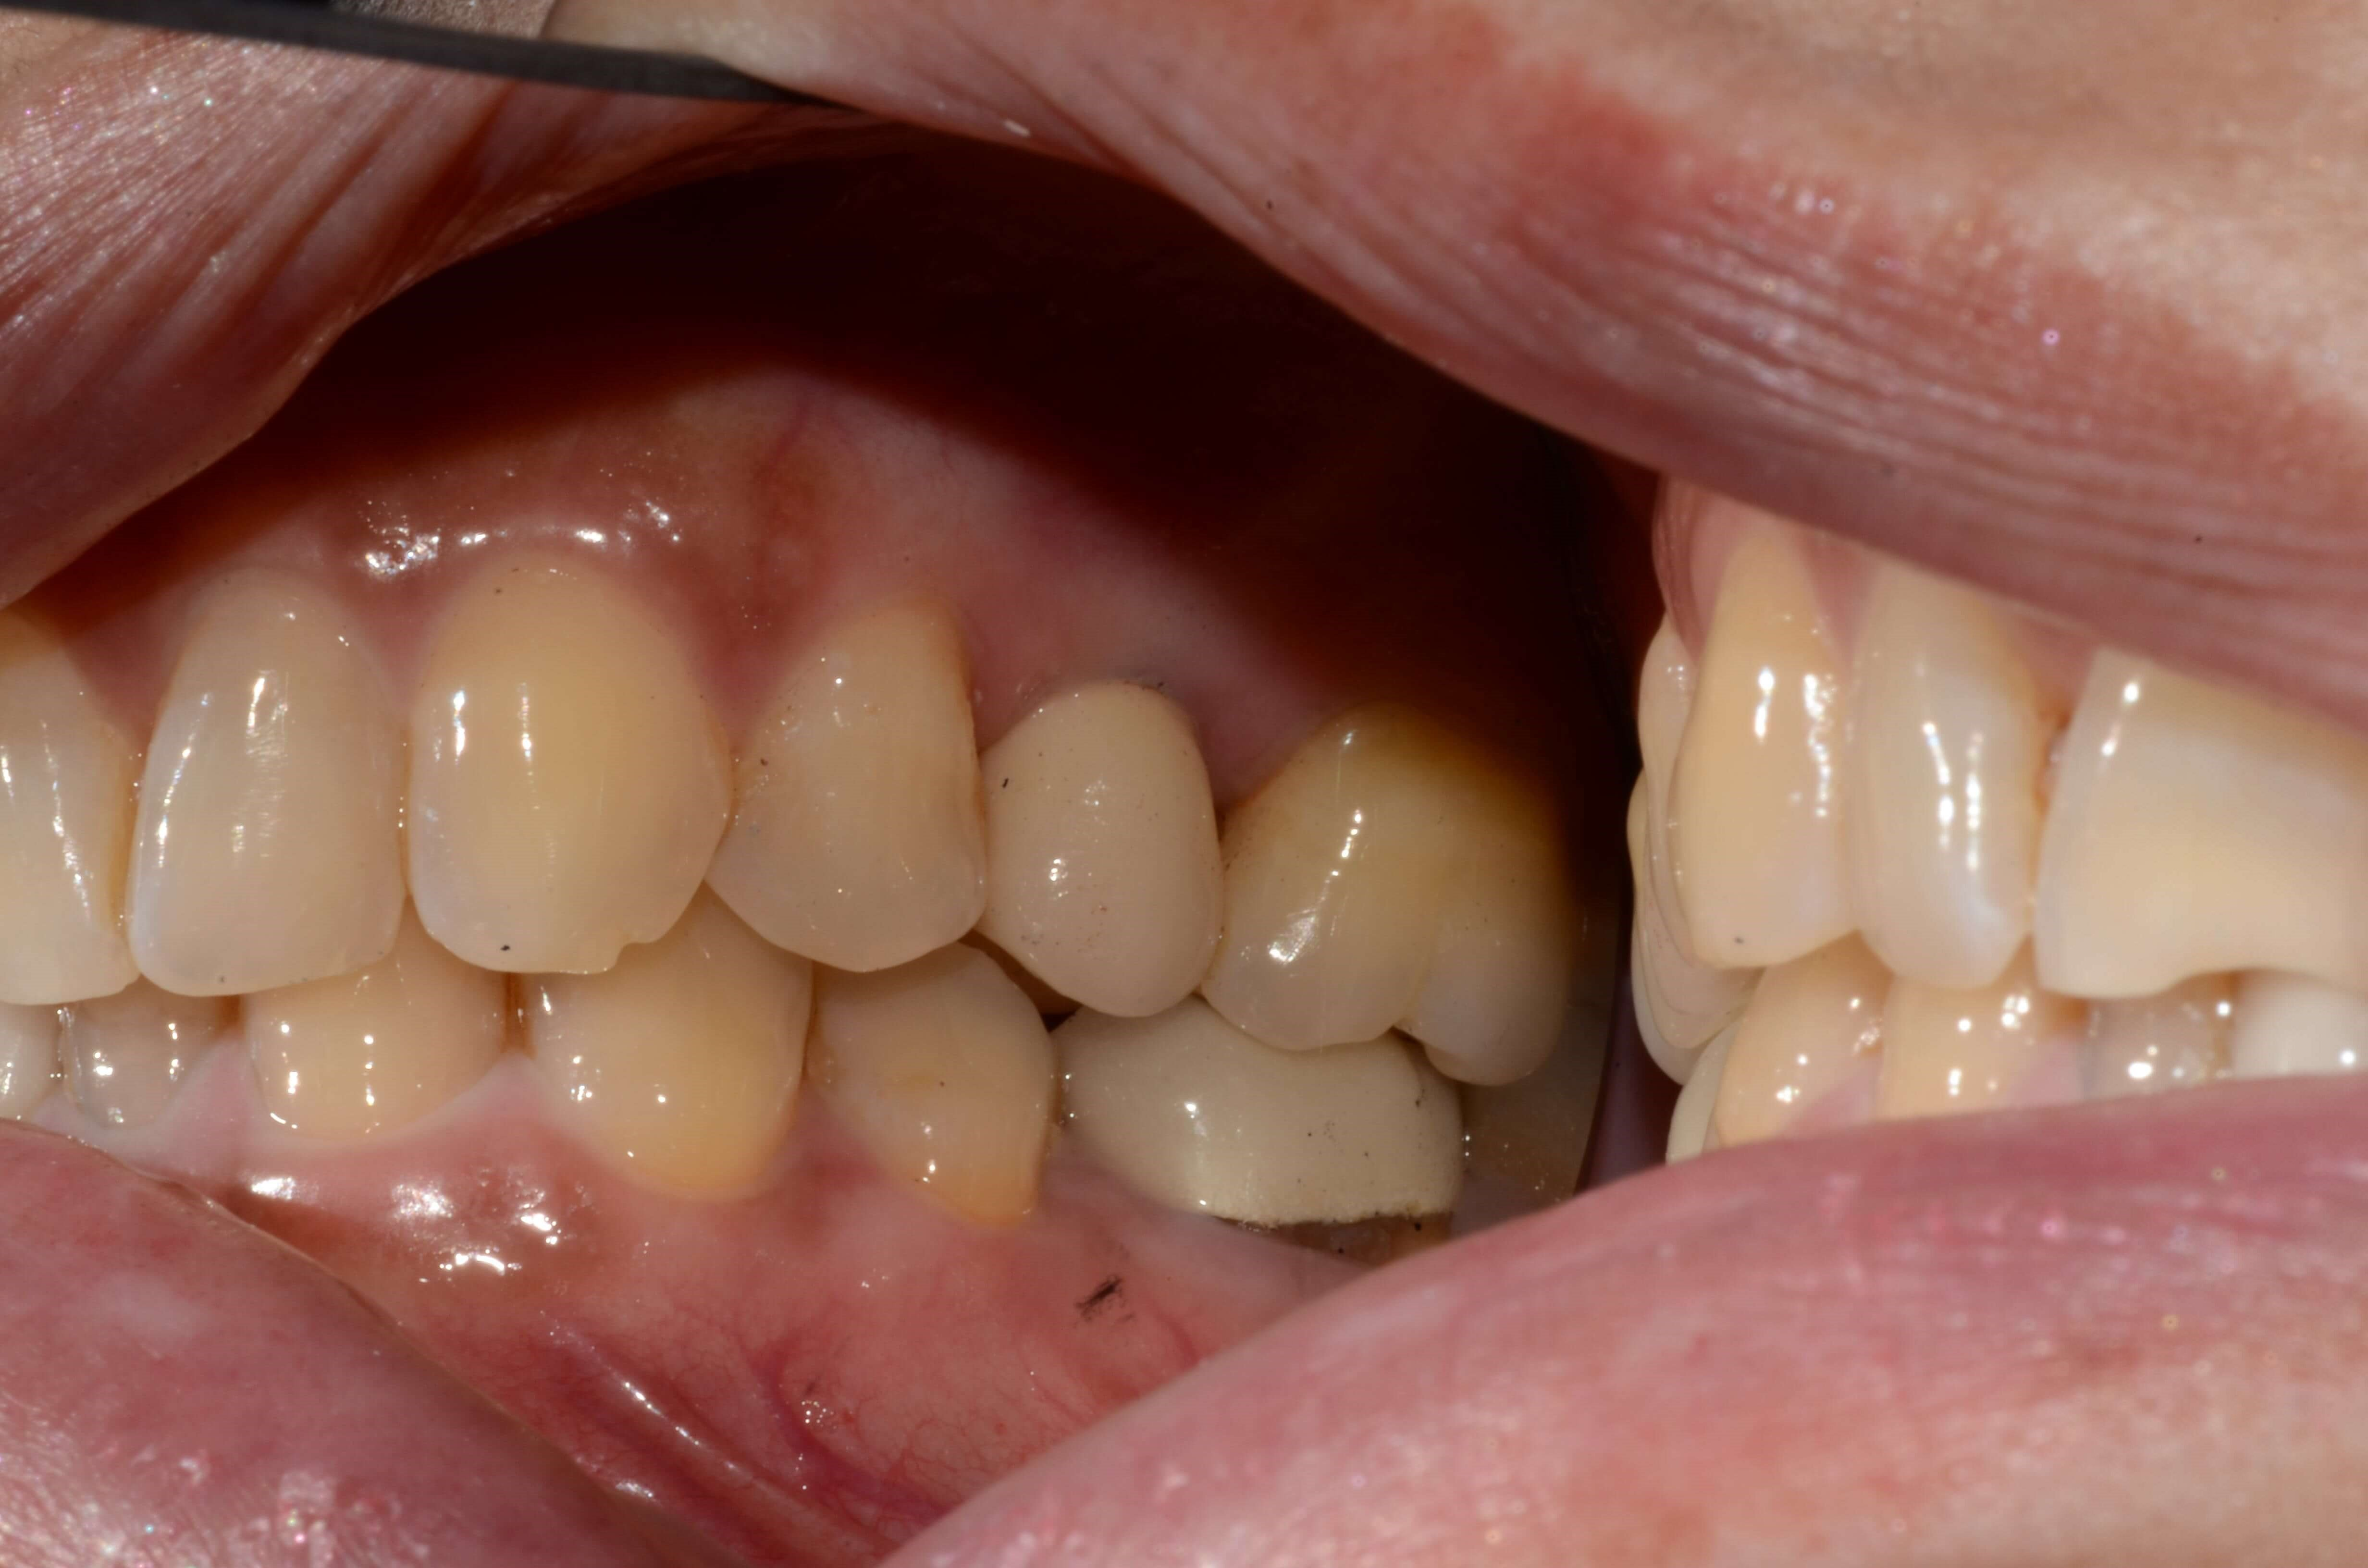 Tricities Dental Implant Crown After